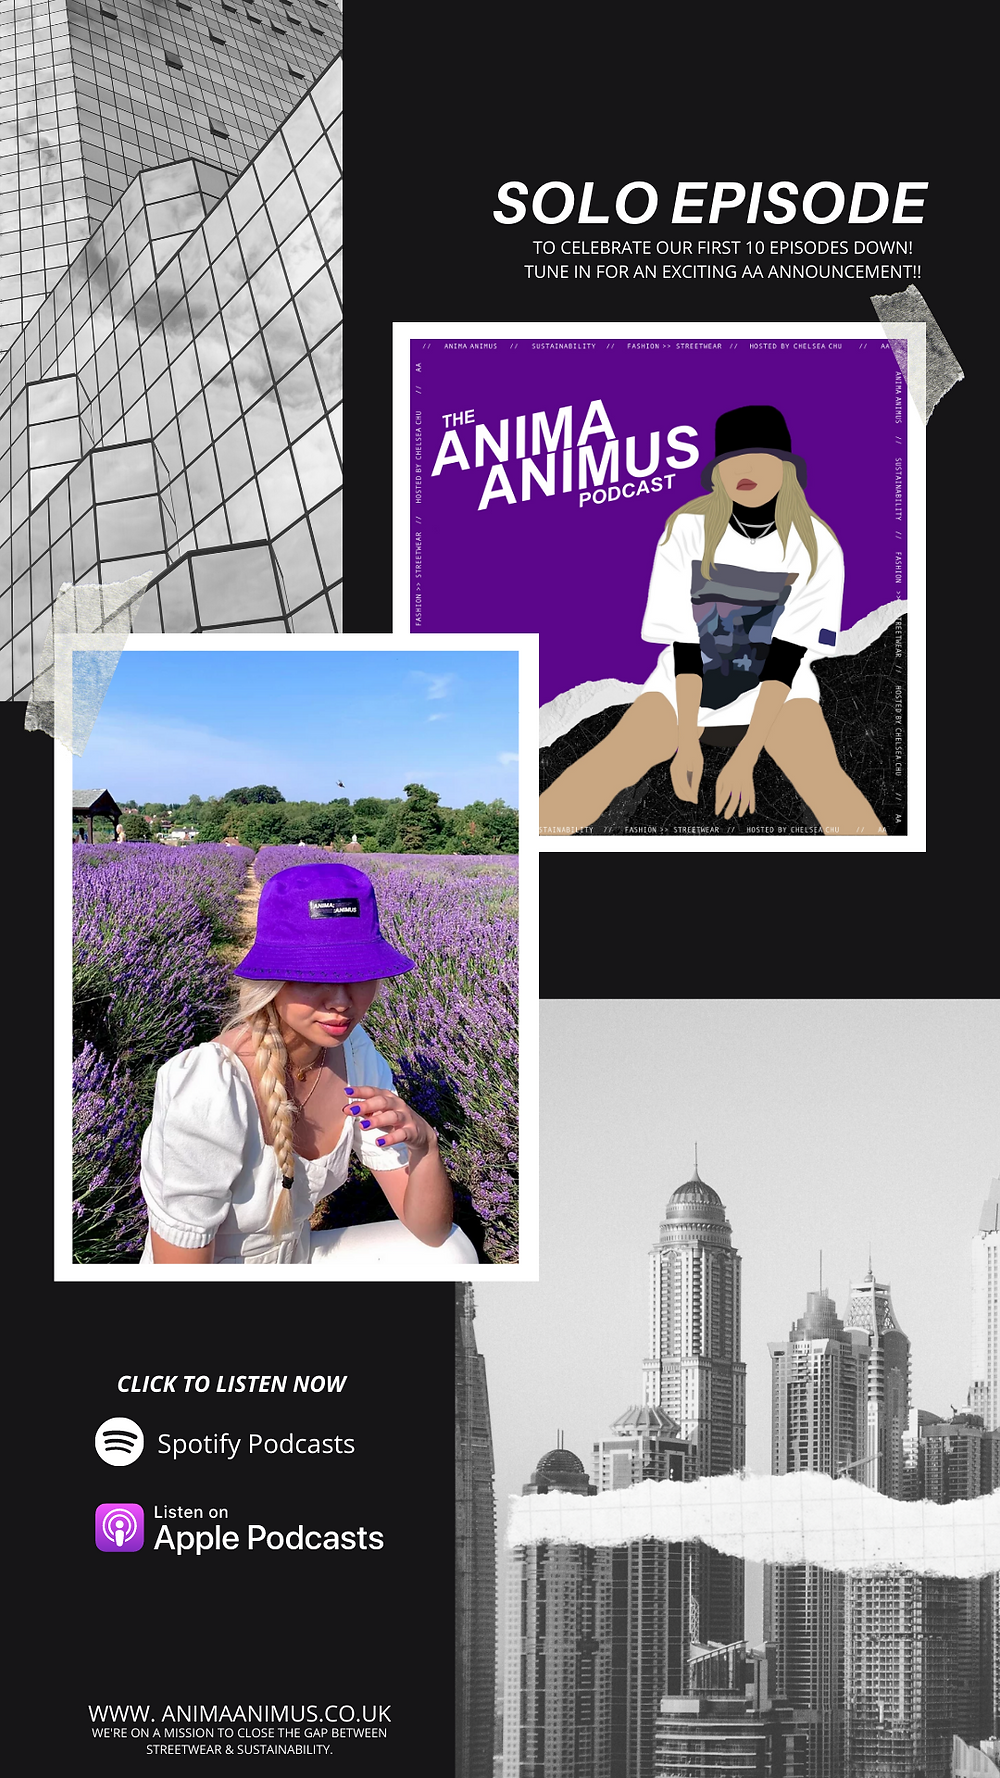 The ANIMA ANIMUS Podcast - ethical and sustainable fashion podcast to fight fast-fashion